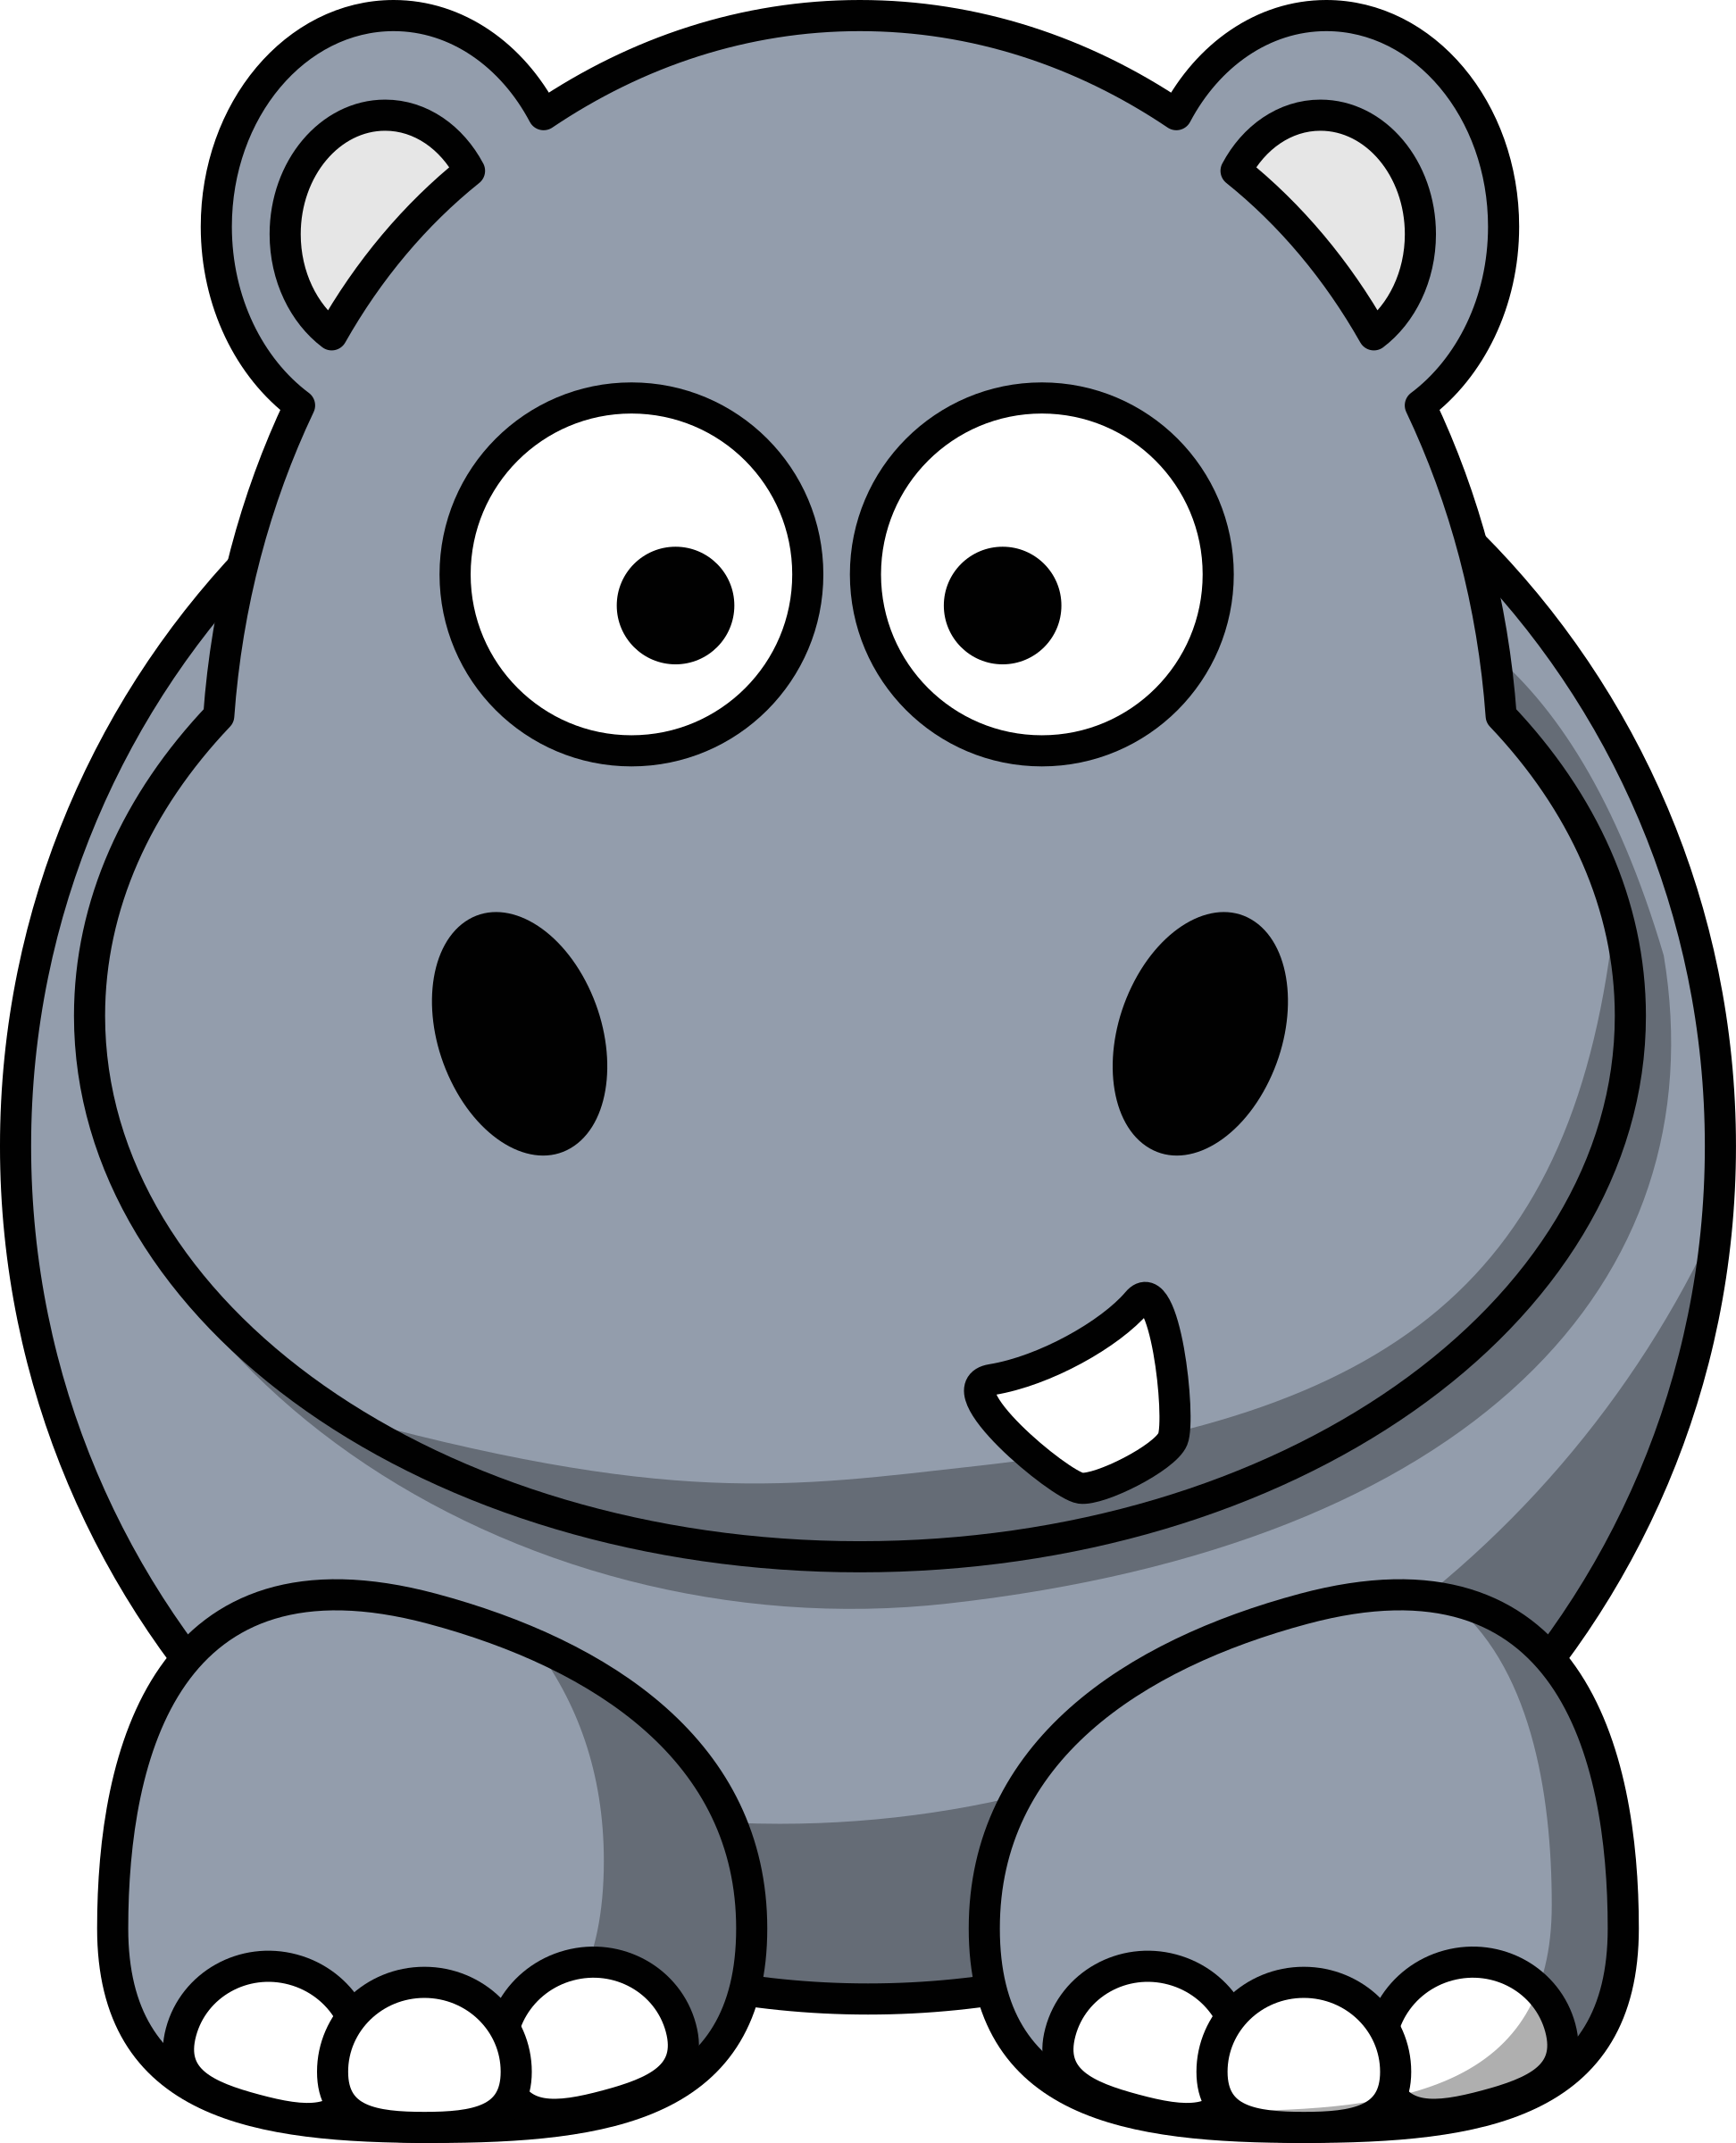 Cartoon hippo by StudioFibonacci